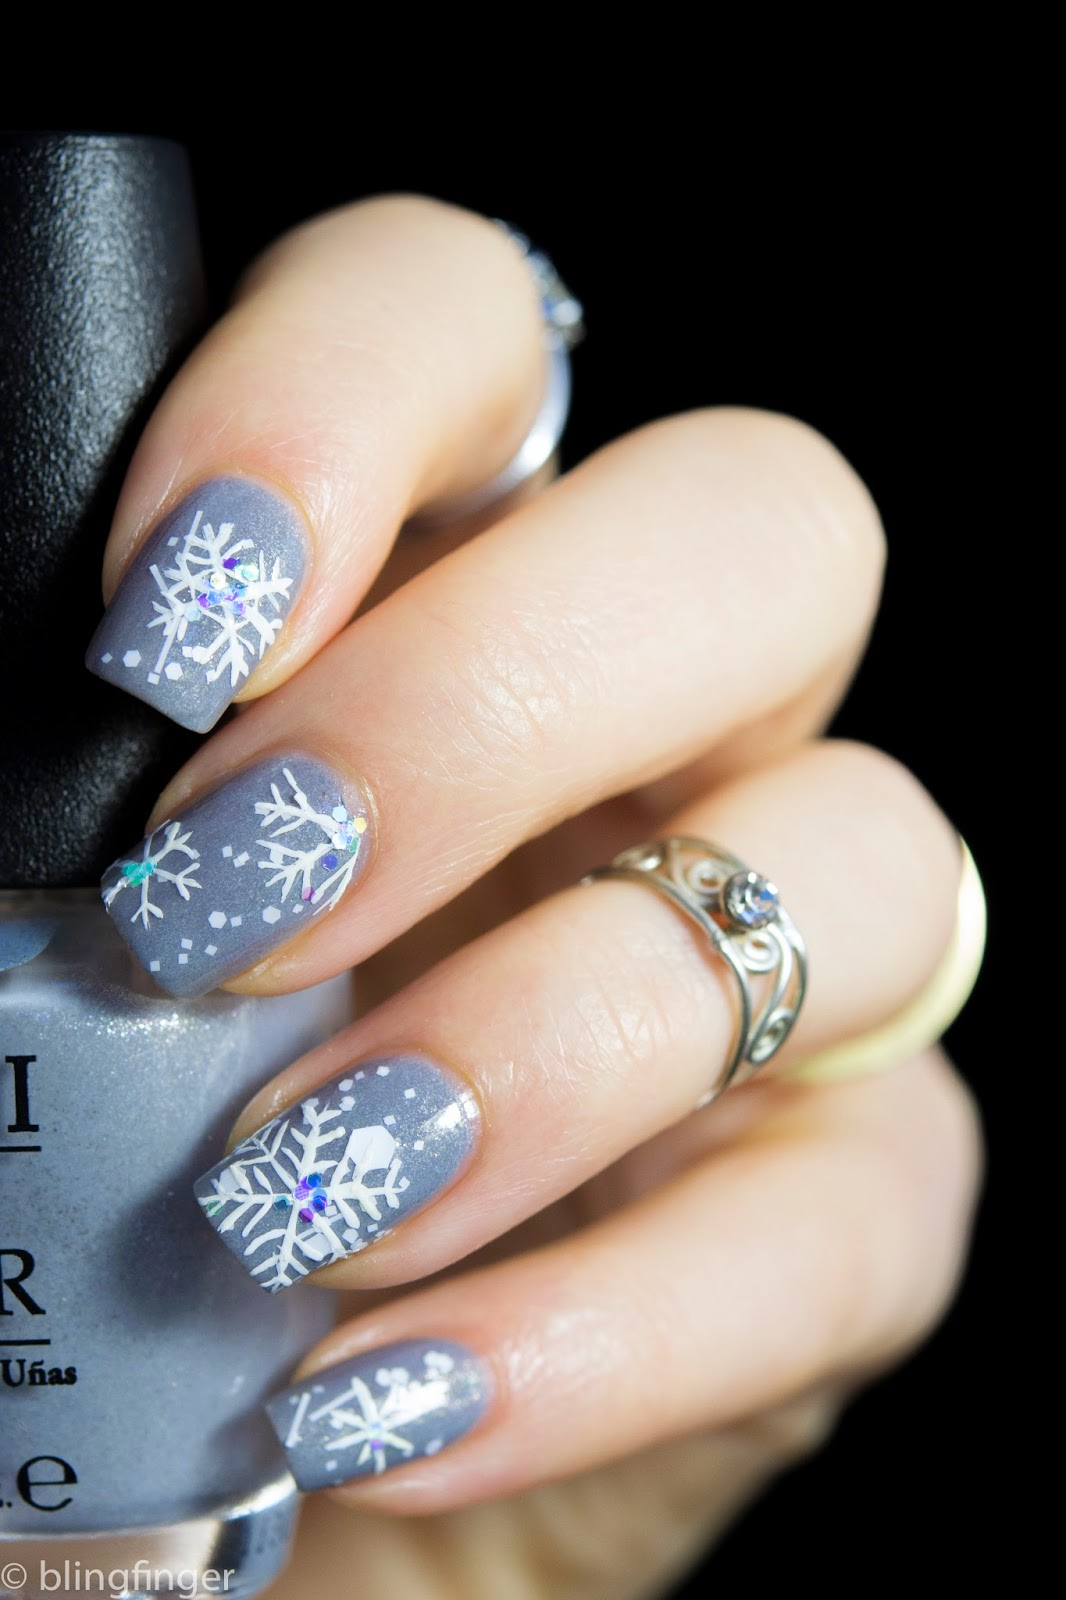 Blingfinger: Snowflake Winter Nail Art